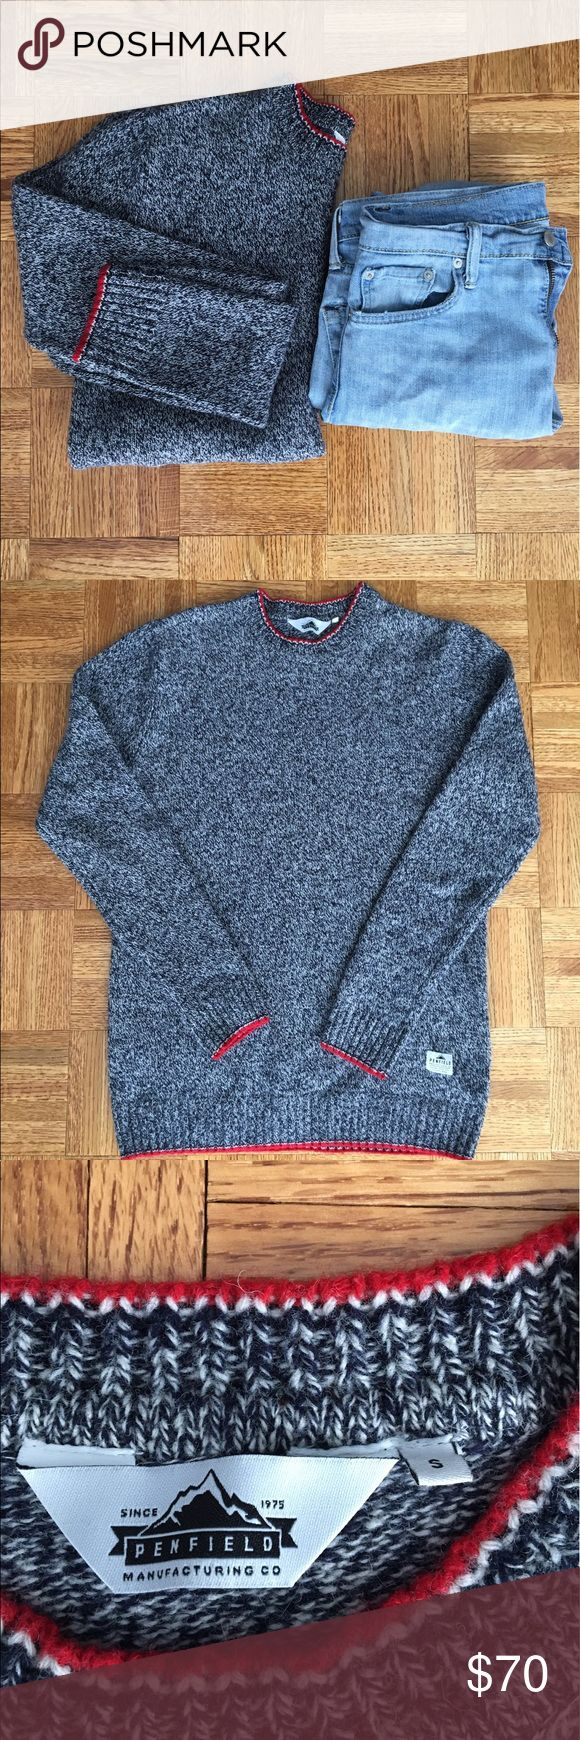 Penfield Men's Crew Neck Sweater 100% Lambswool. Blue/gray with red trim. Ribbing on the wrist and at the bottom of the sweater. Like new. Could also fit a female for a more relaxed fit. Jeans photographed are also for sale. Penfield Sweaters Crewneck